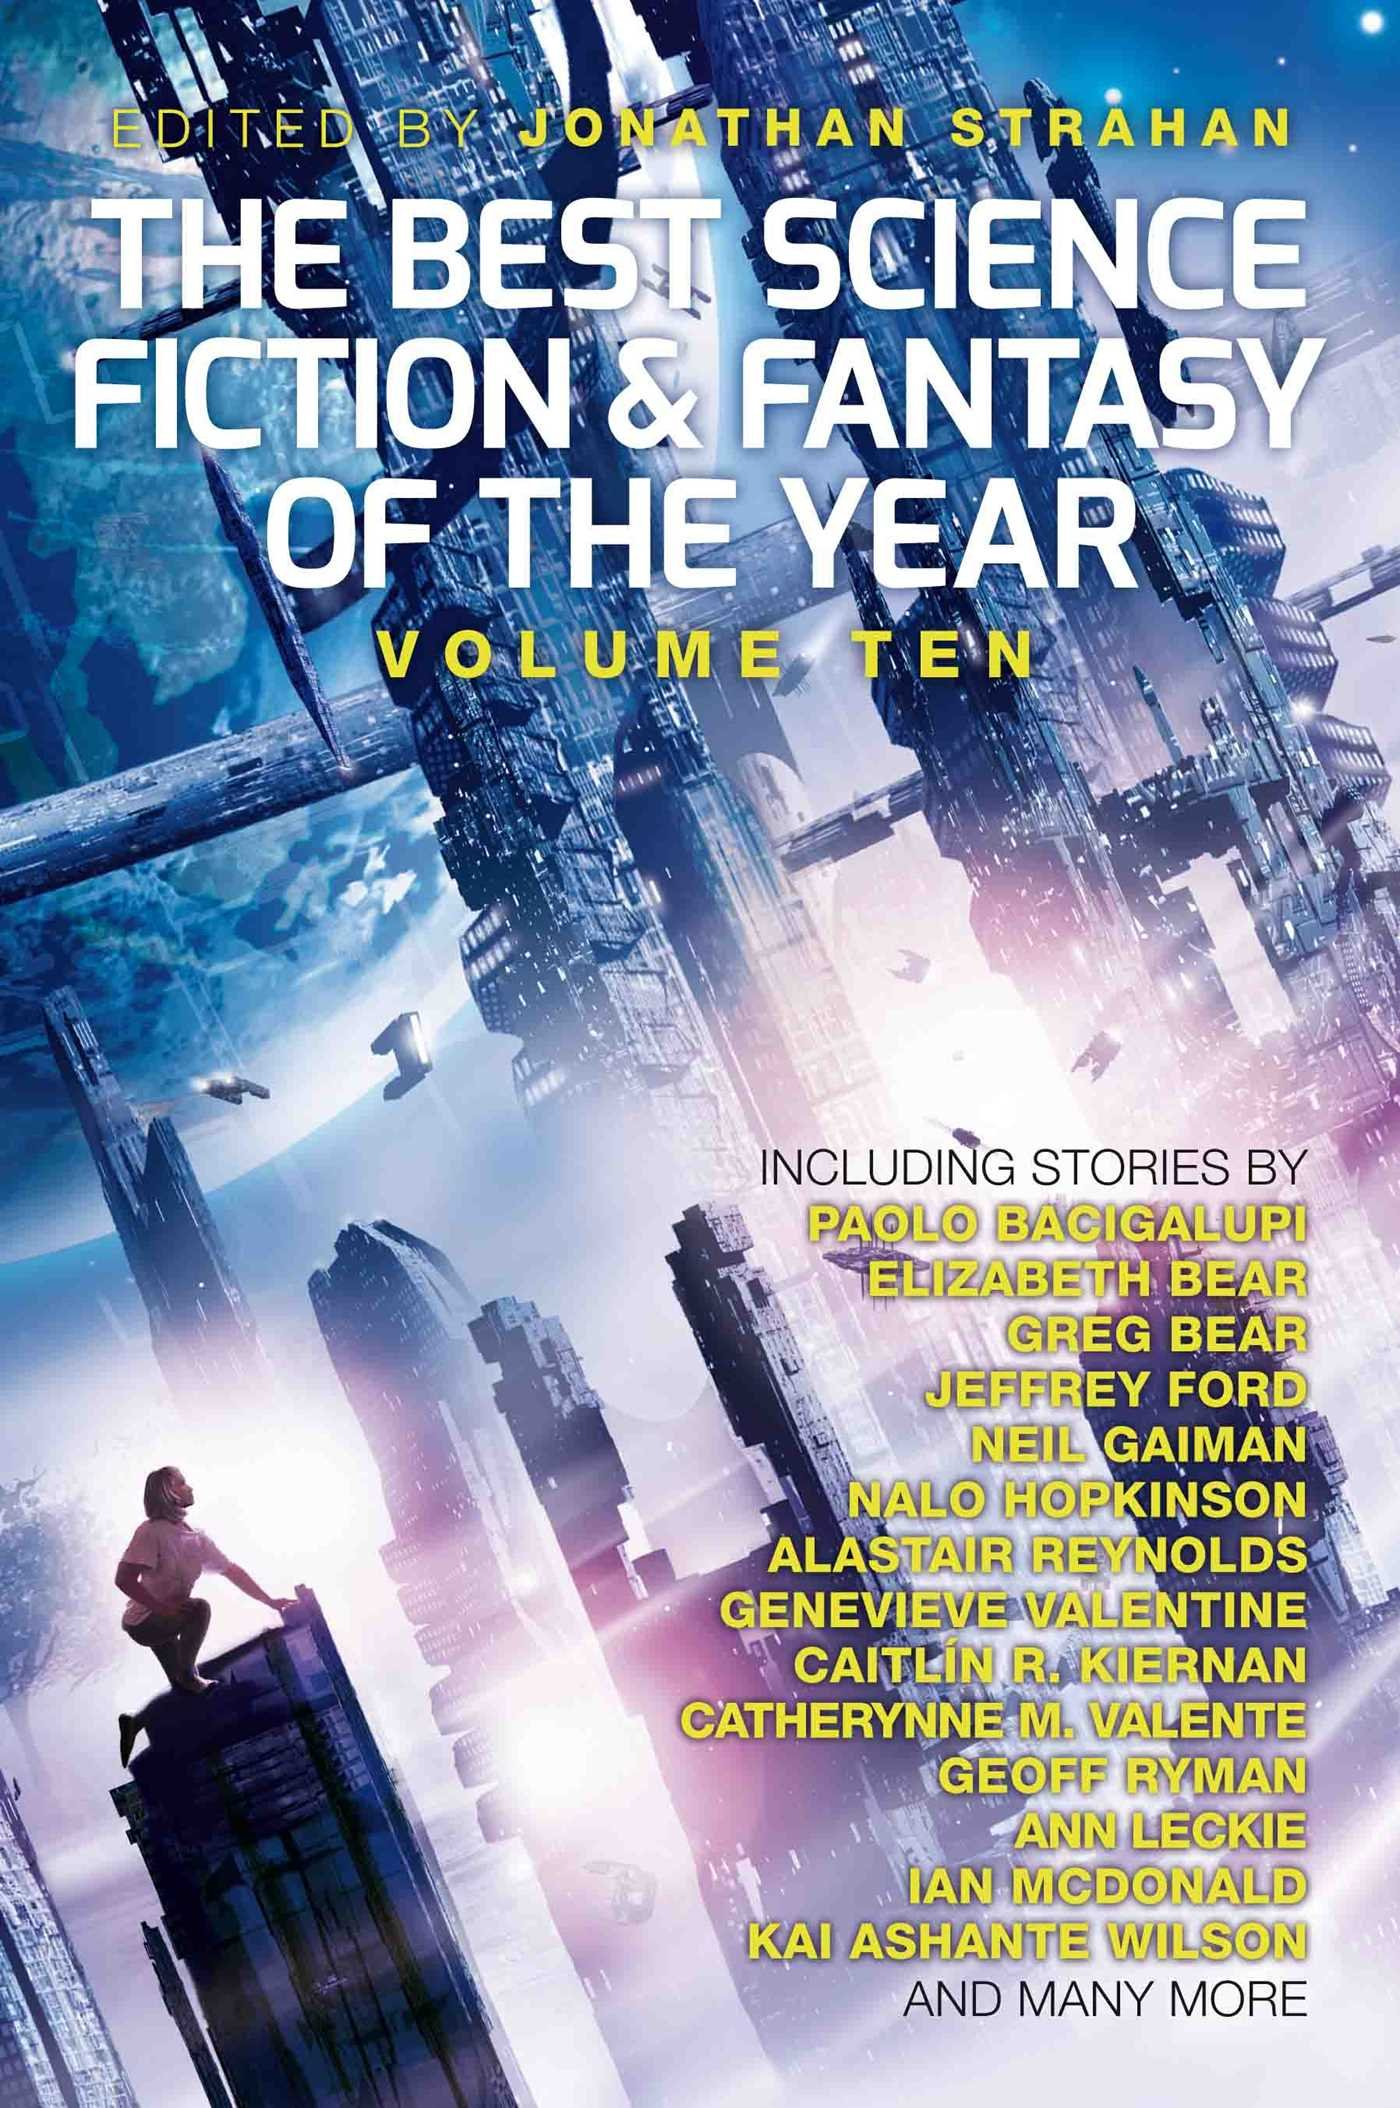 The Best Science Fiction And Fantasy Of The Year: Volume Ten (best Science  Fiction & Fantasy Of The Year): Jonathan Strahan: 9781781084373:  Amazon: